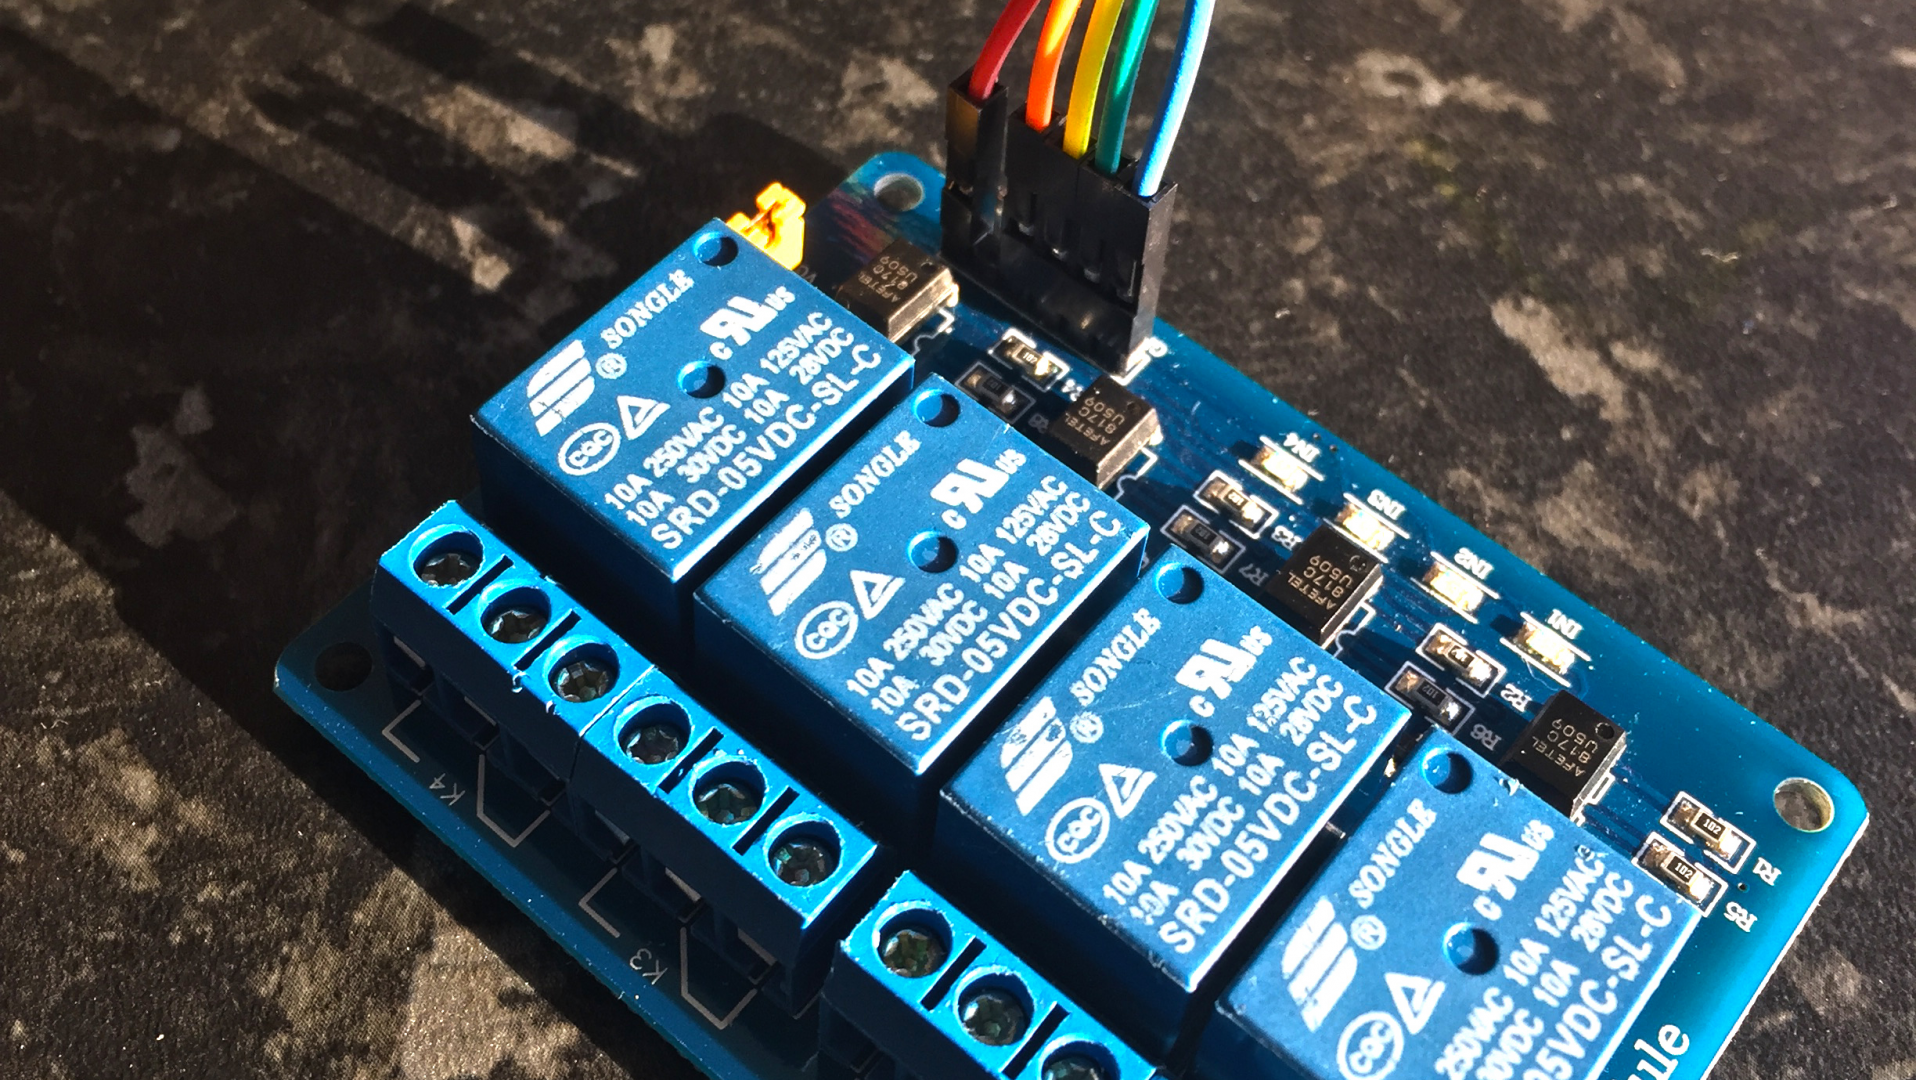 The Arduino relay module